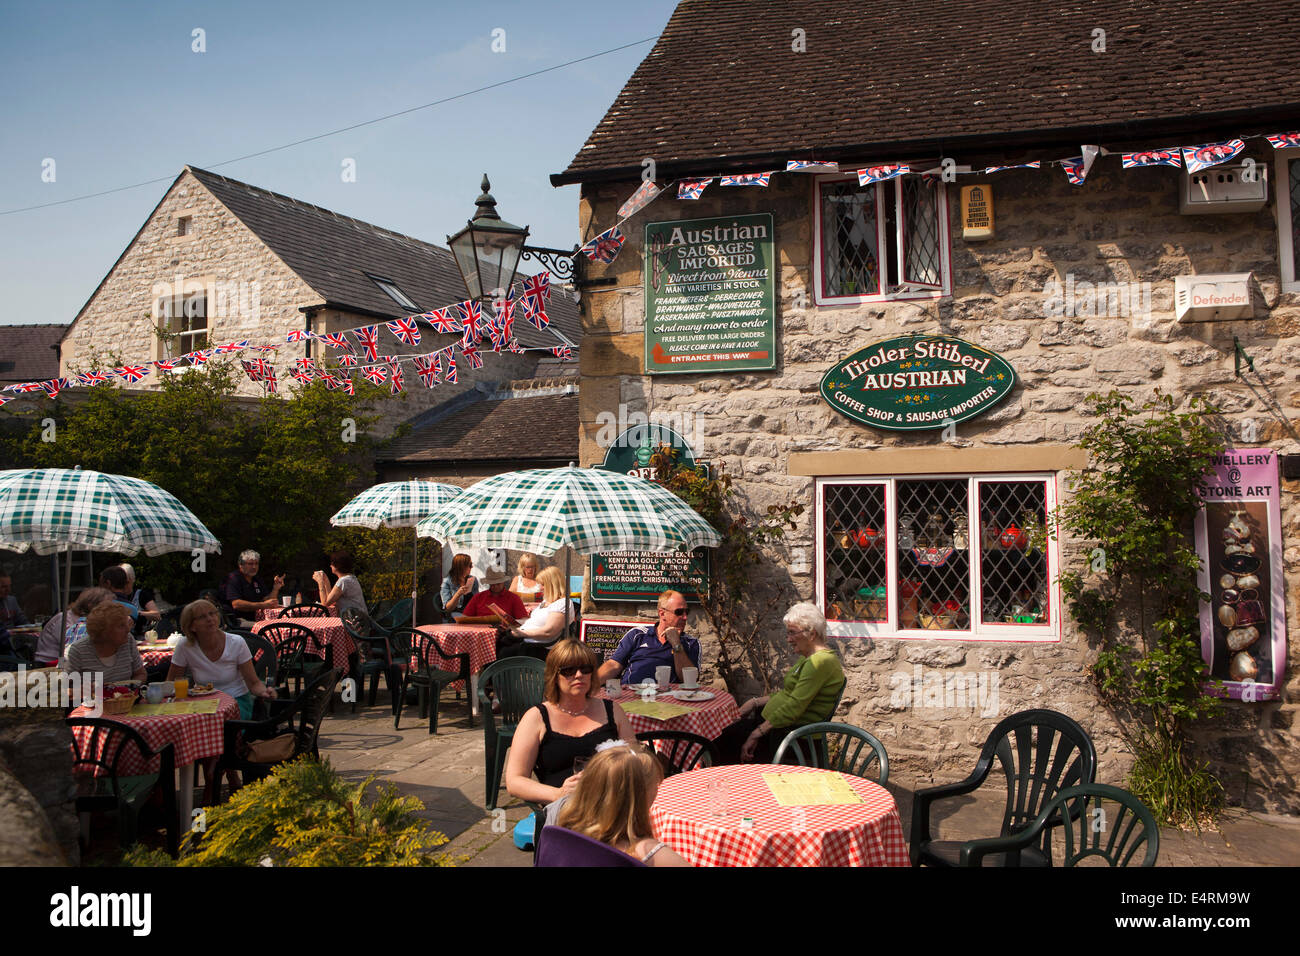 bakewell women Meet bakewell (derbyshire) women for online dating contact uk girls without registration and payment you may email, chat, sms or call bakewell ladies instantly.